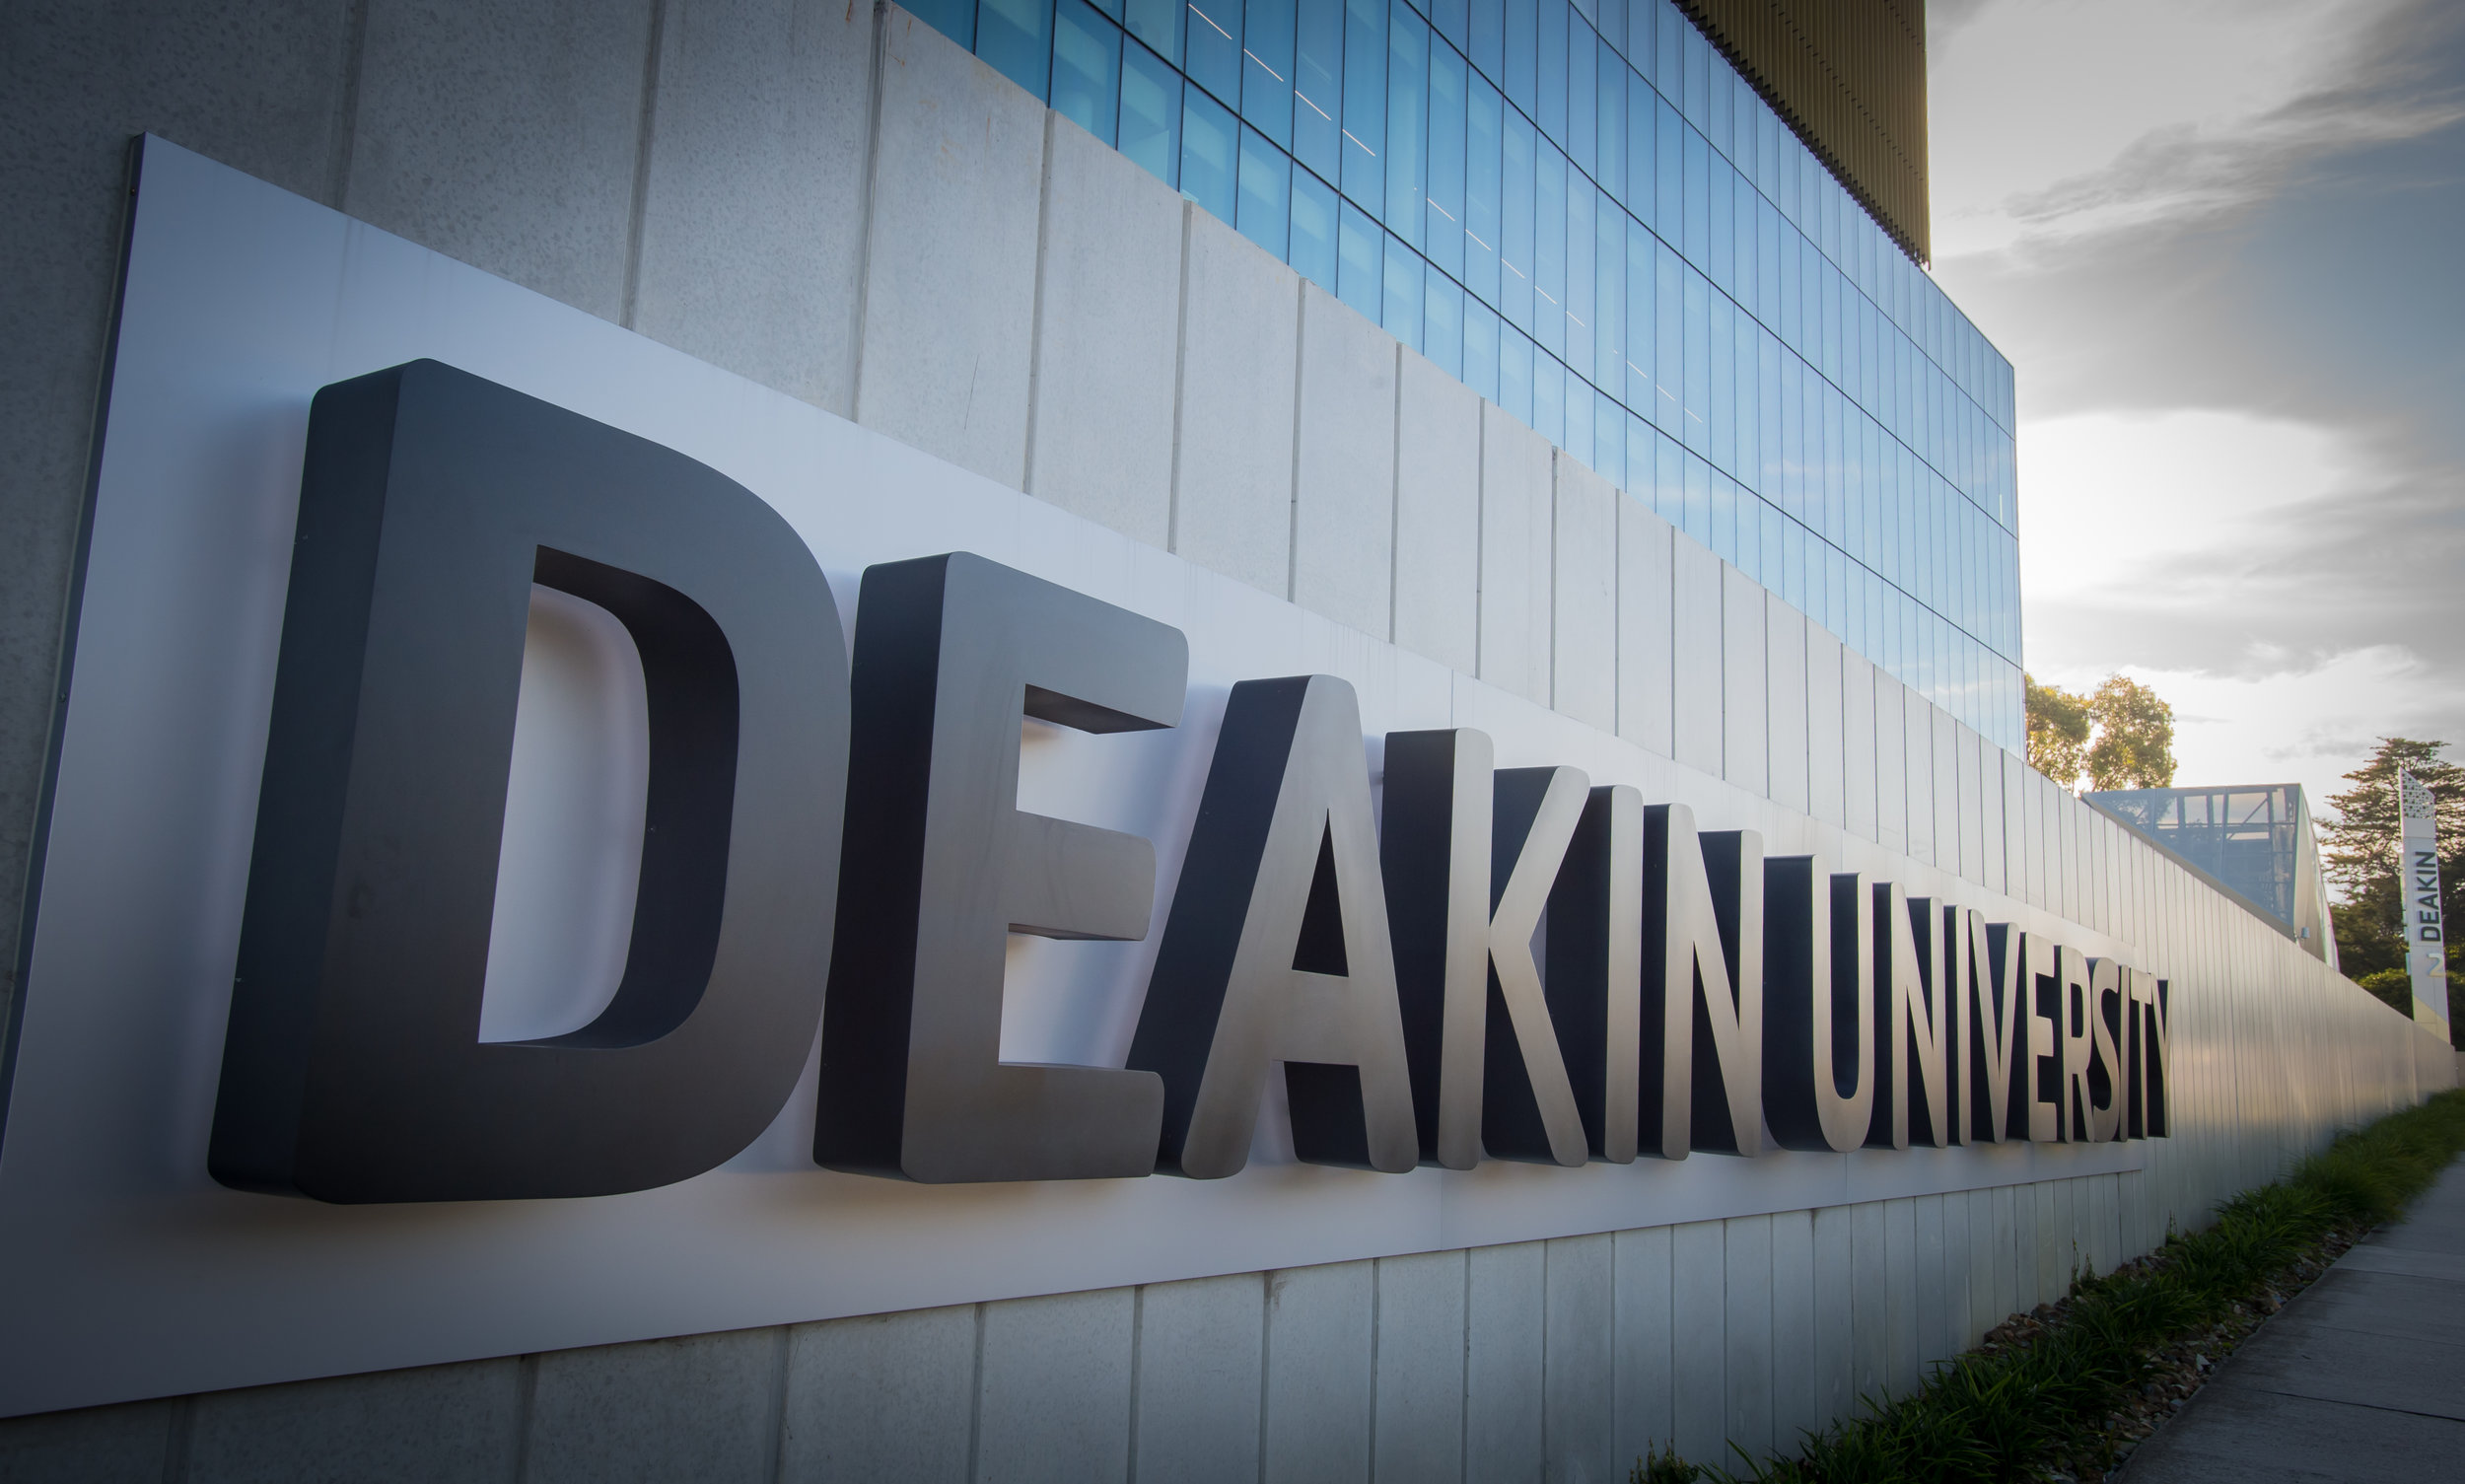 Given Deakin's commitment to rural and regional communities explicitly outlined in our charter, we're ideally placed to lead these types of research projects.""